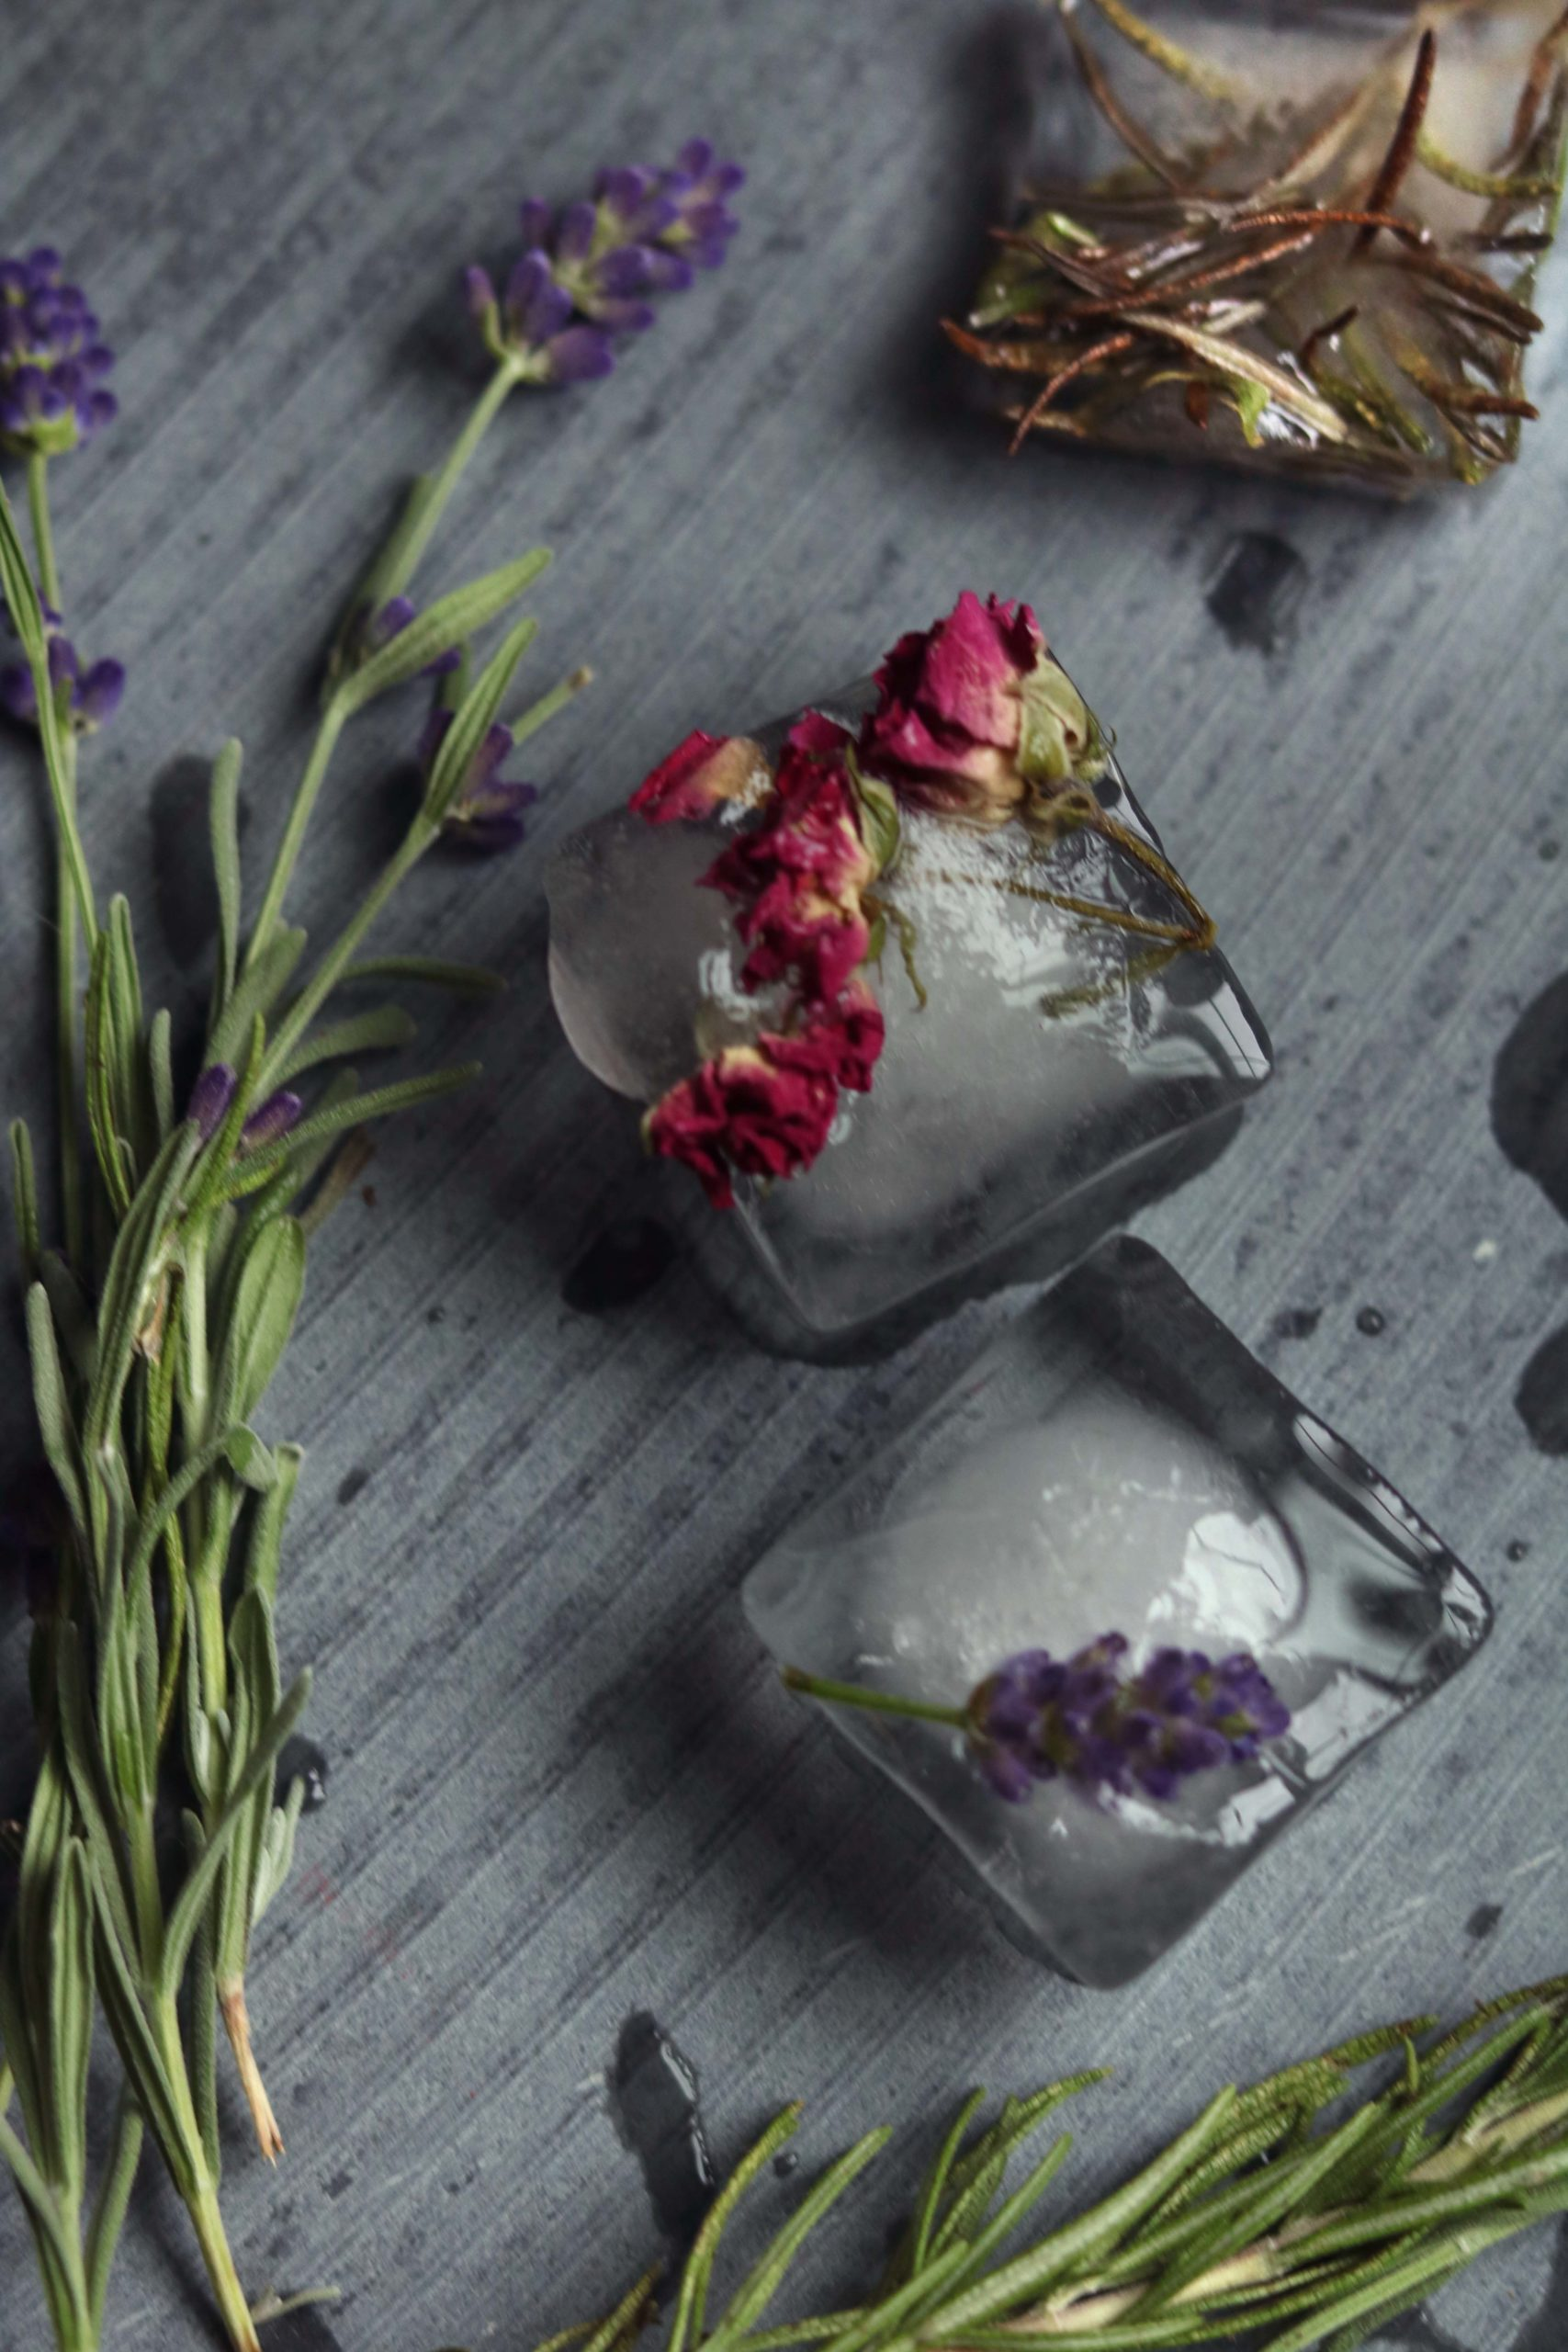 Moon water ice is a lovely, simple diy witchy craft project to celebrate the full moon.